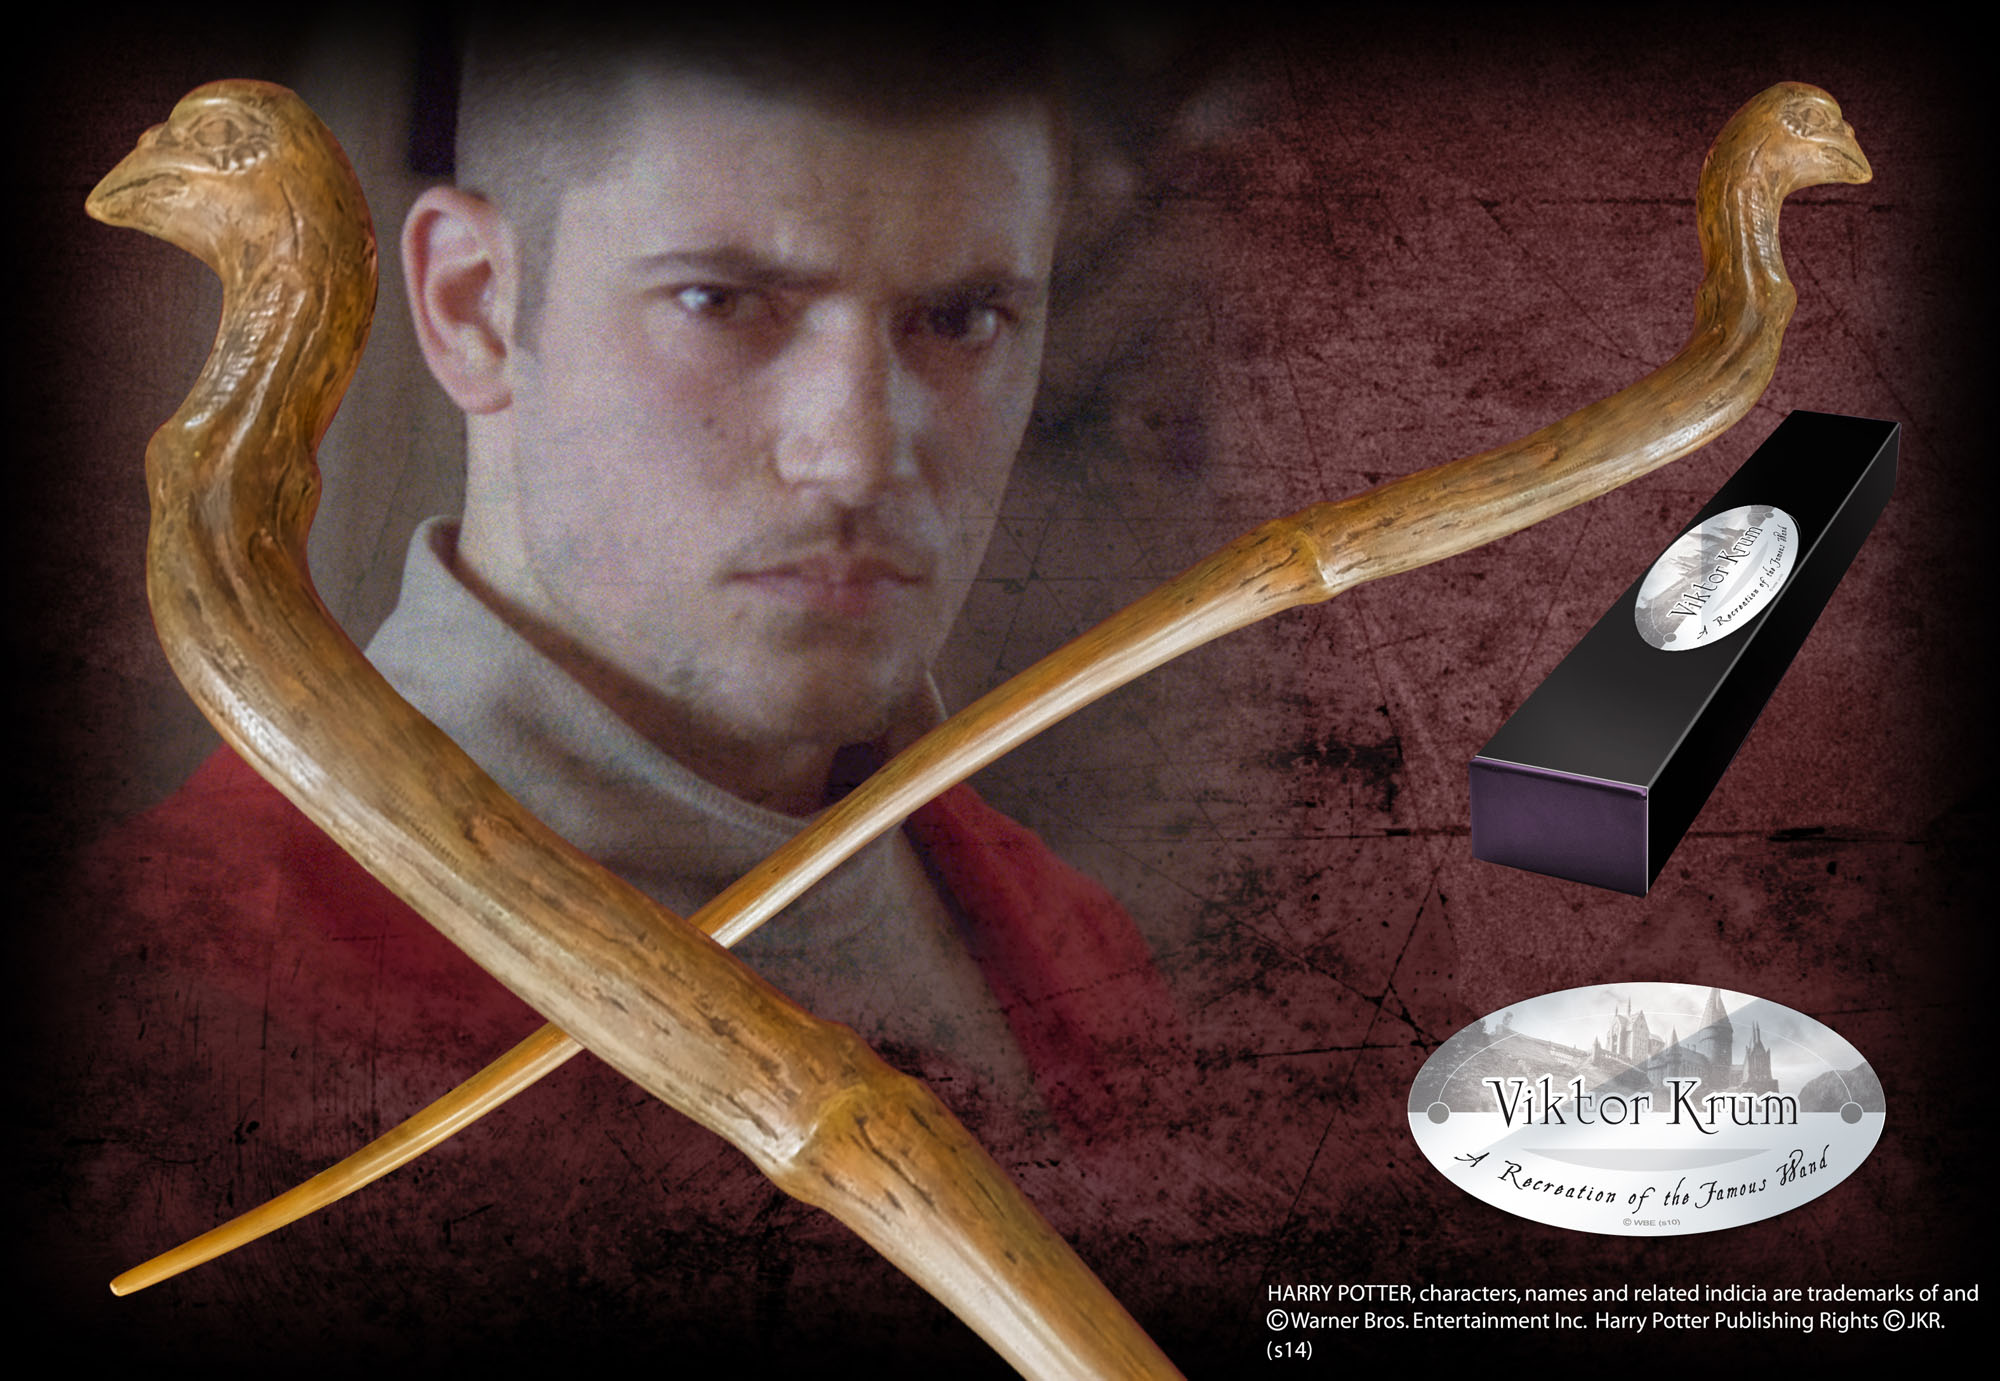 Viktor Krum Character Wand The Noble Collection Uk Easily move forward or backward to get to the perfect spot. viktor krum character wand